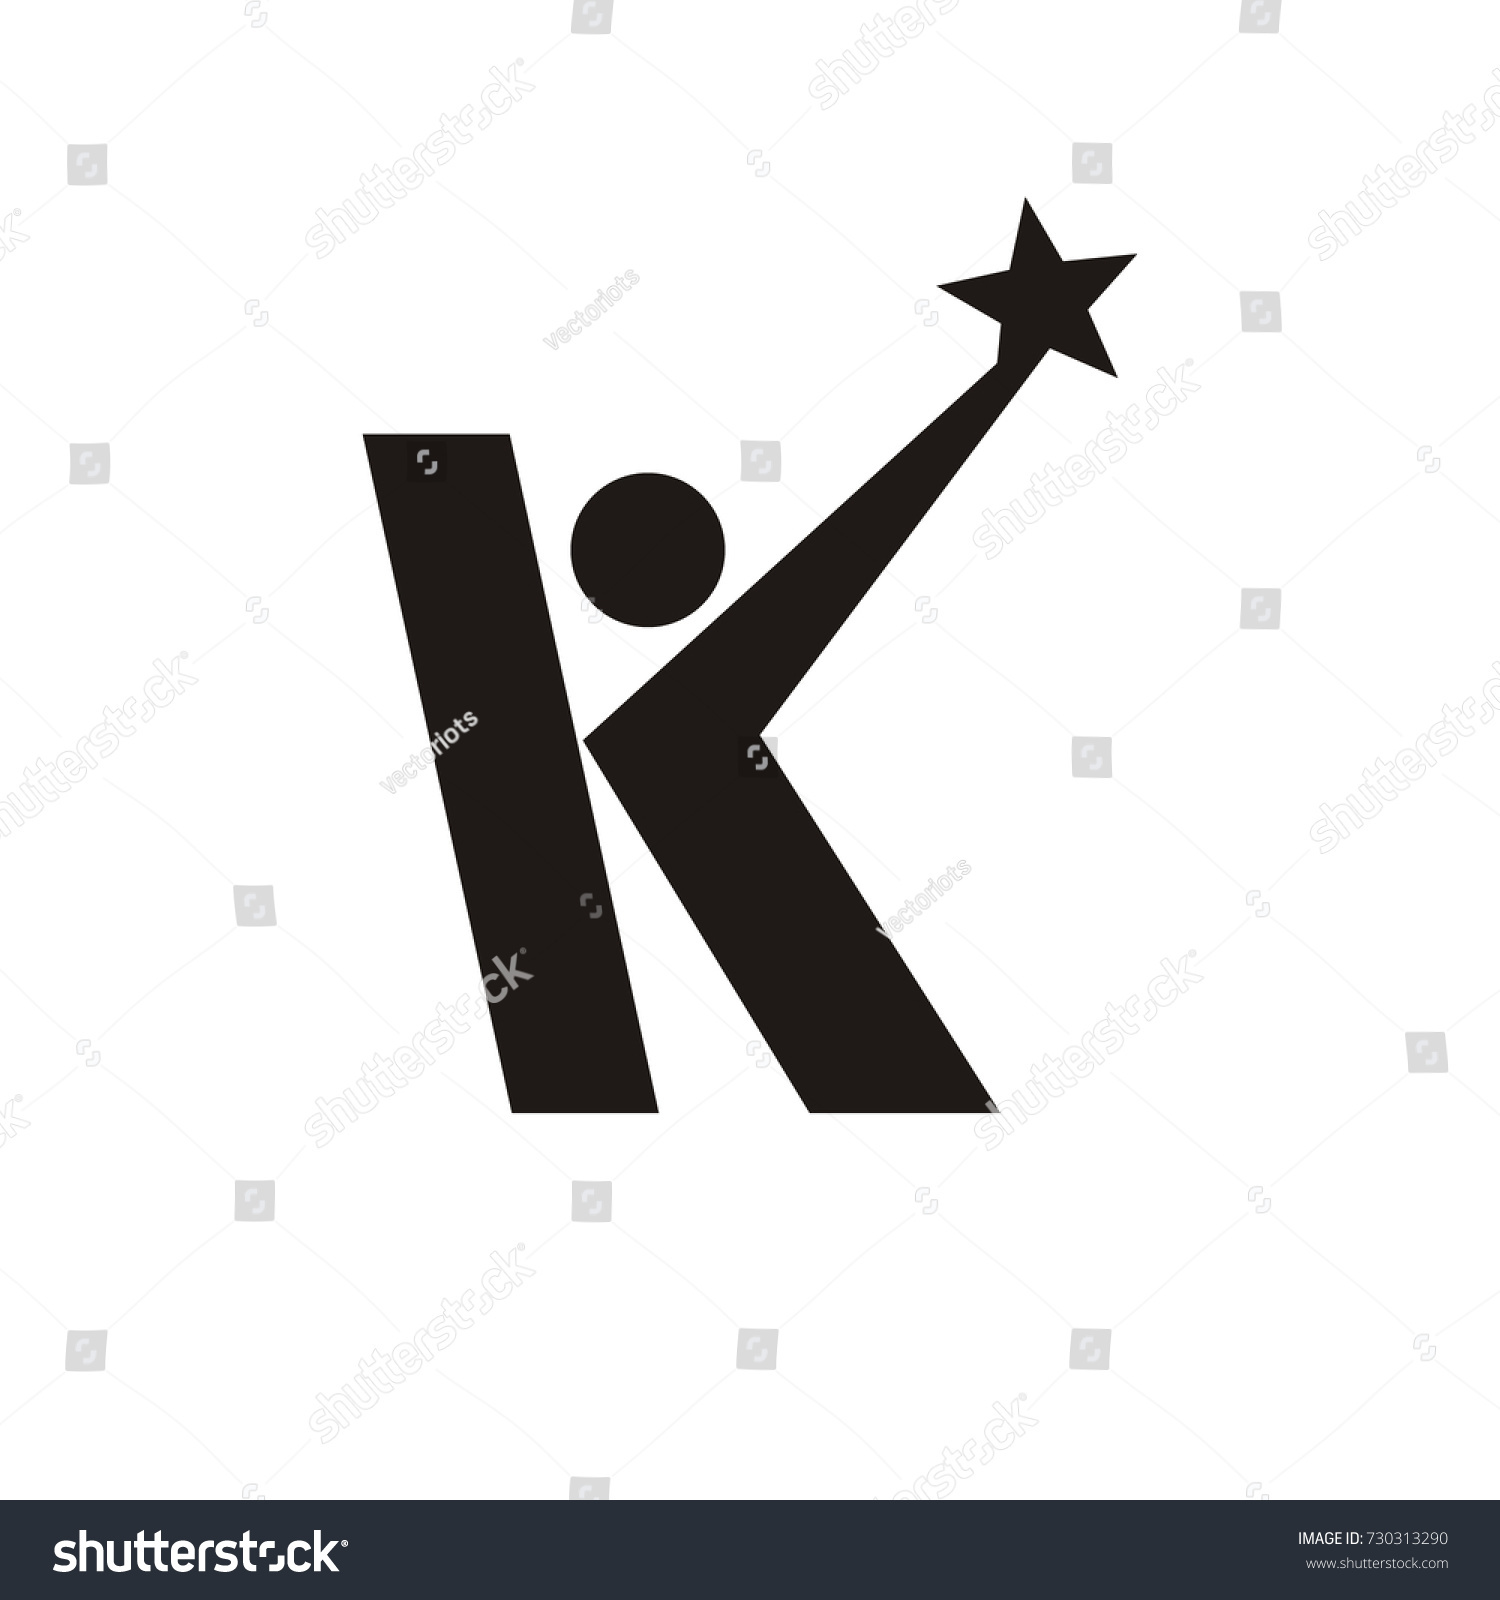 k initial letter logo stick figure stock vector royalty free